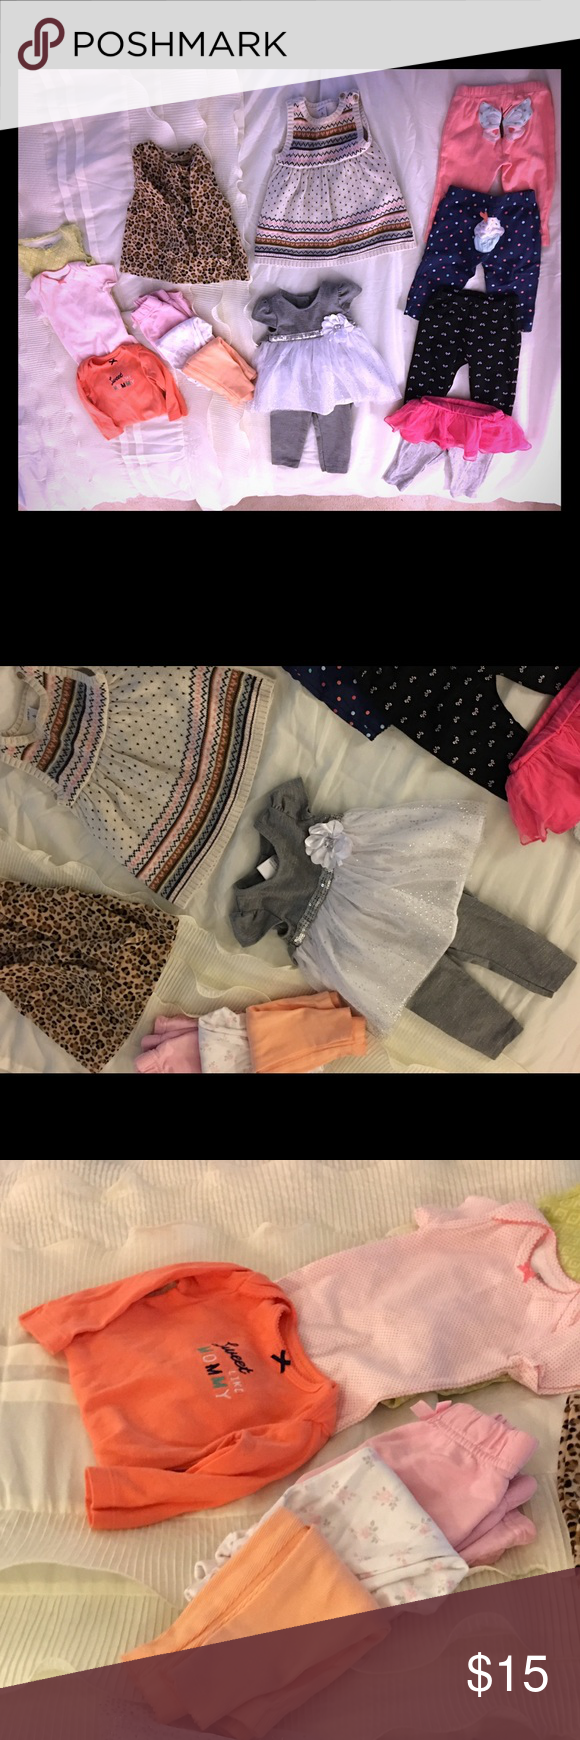 6 month bundle 7 pairs of pants. Three like new onsies. 1 sweater dress. 1 adorable sparkly white and grey dress outfit. 1 fleece leopard print top. All great condition. carters Shirts & Tops